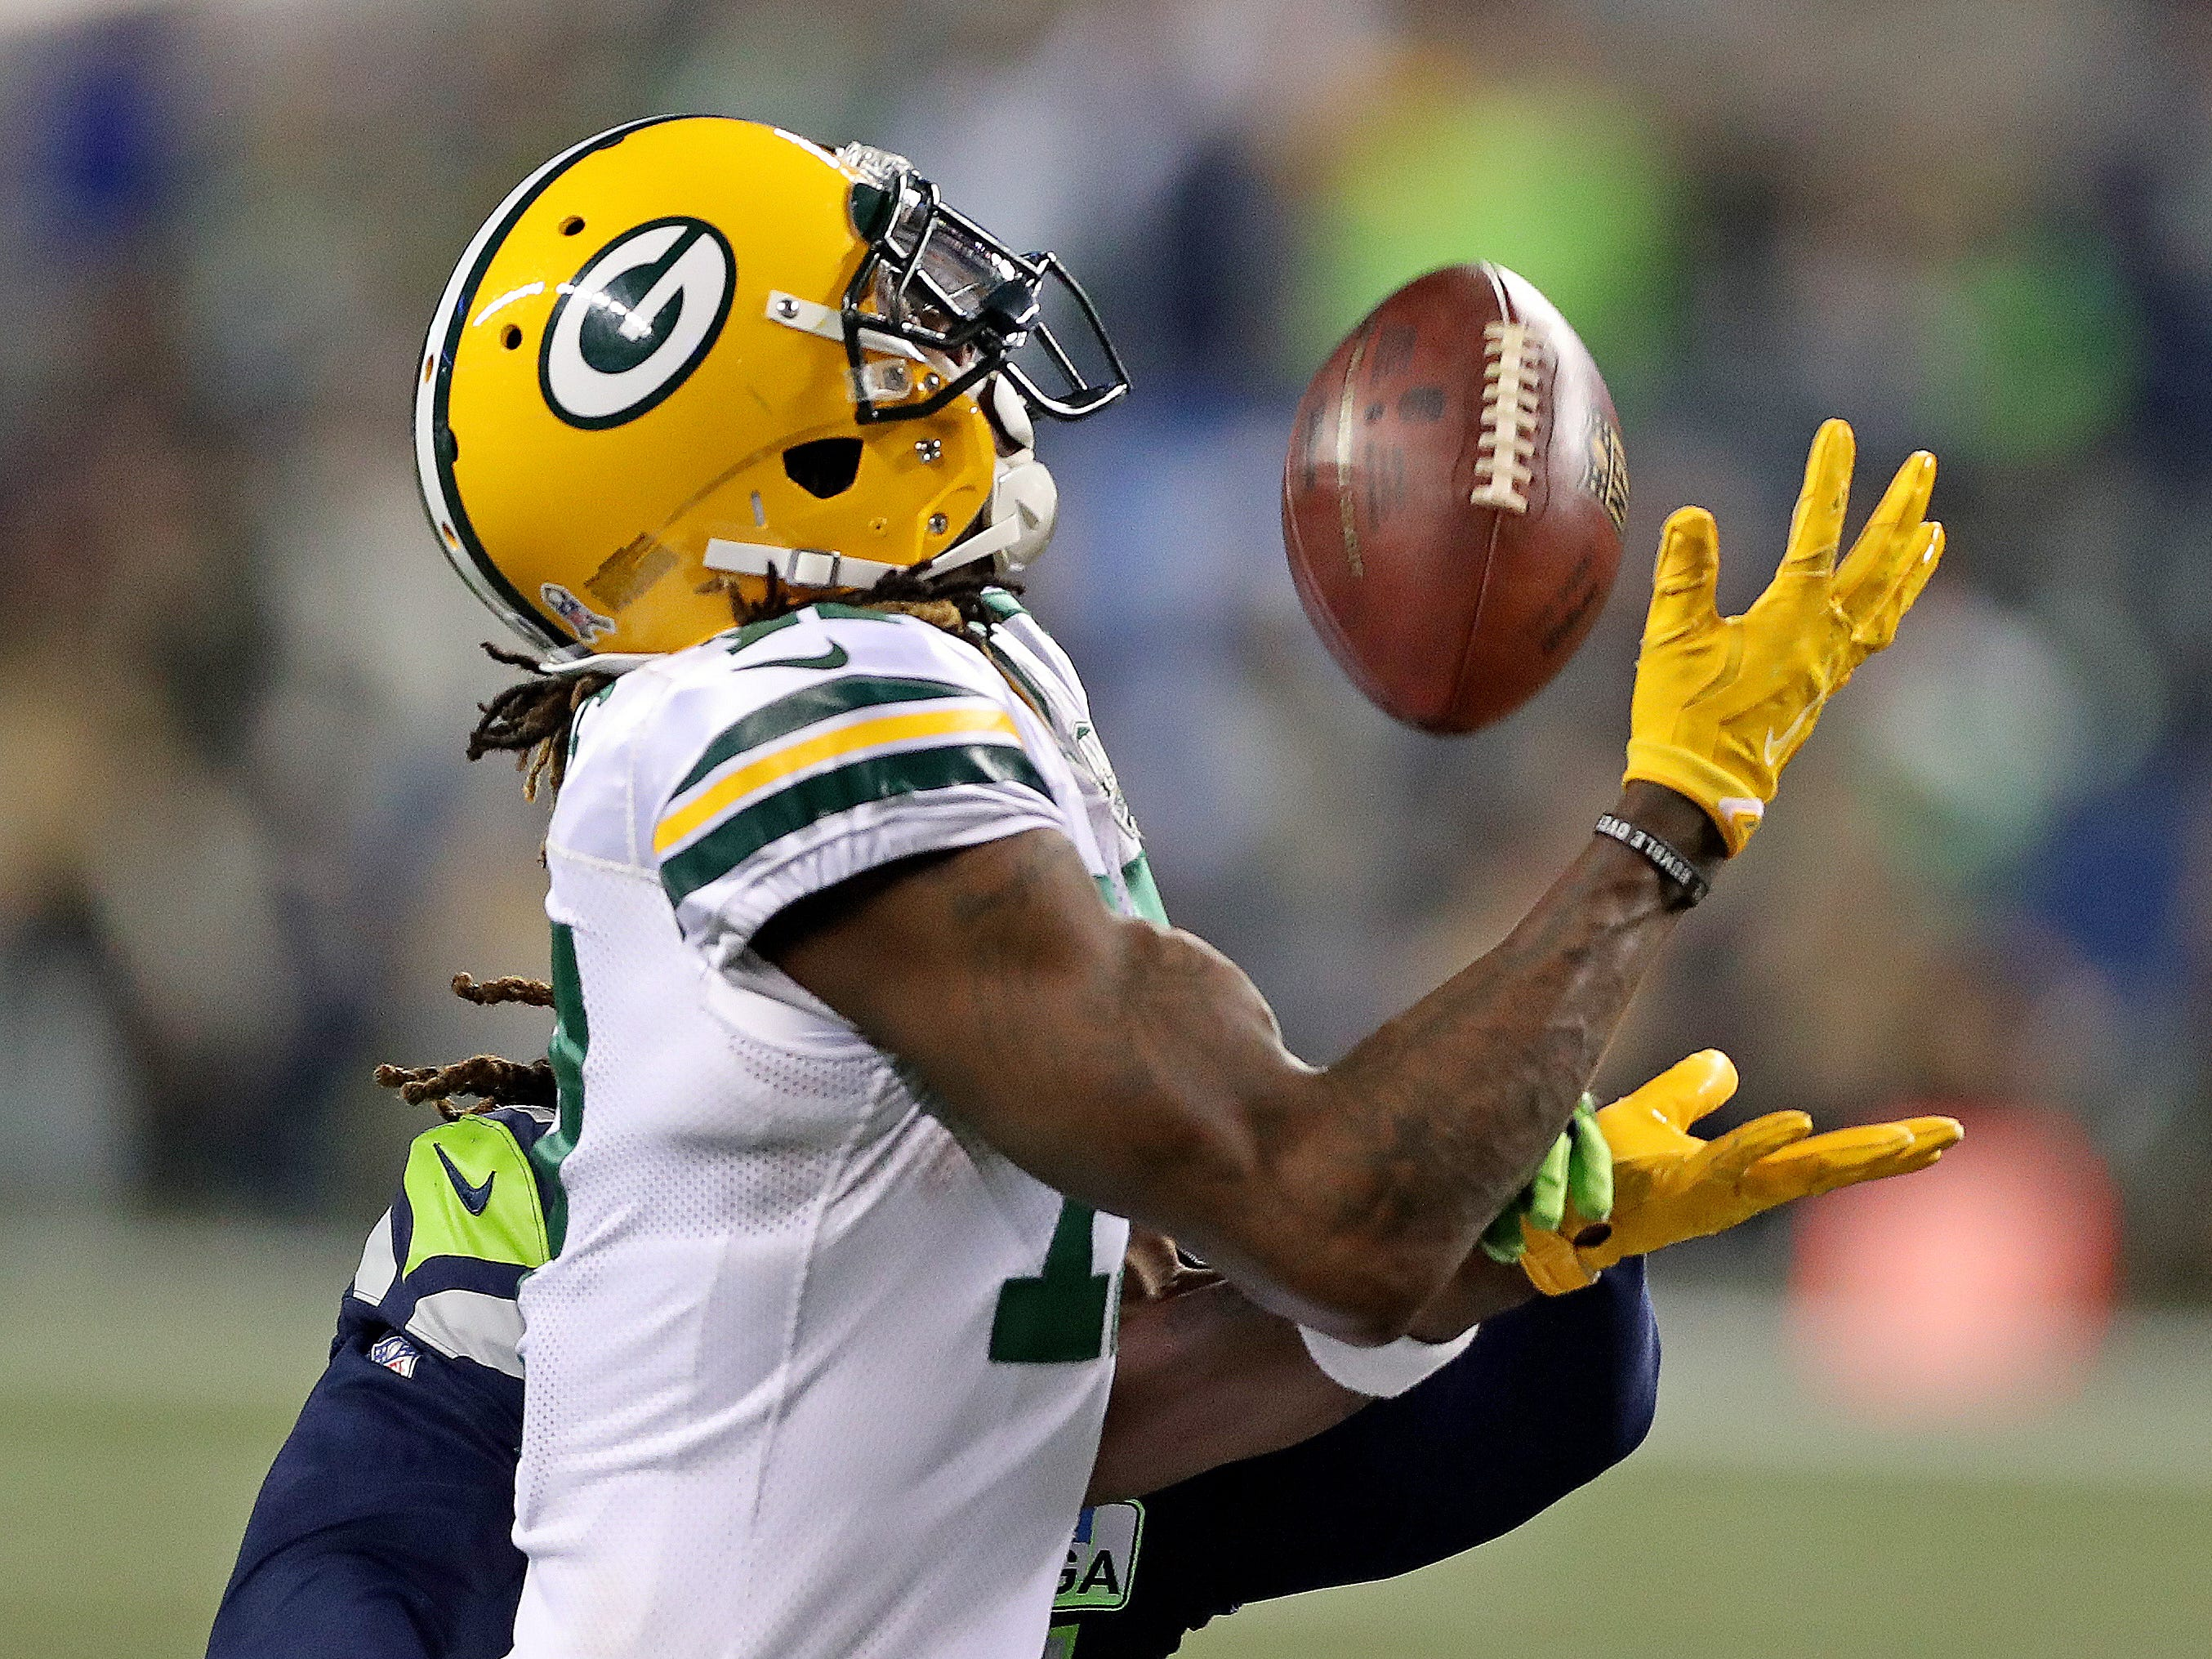 Green Bay Packers wide receiver Davante Adams (17) makes a catch on a long pass against the Seattle Seahawks at CenturyLink Field Thursday, November 15, 2018 in Seattle, WA. Jim Matthews/USA TODAY NETWORK-Wis